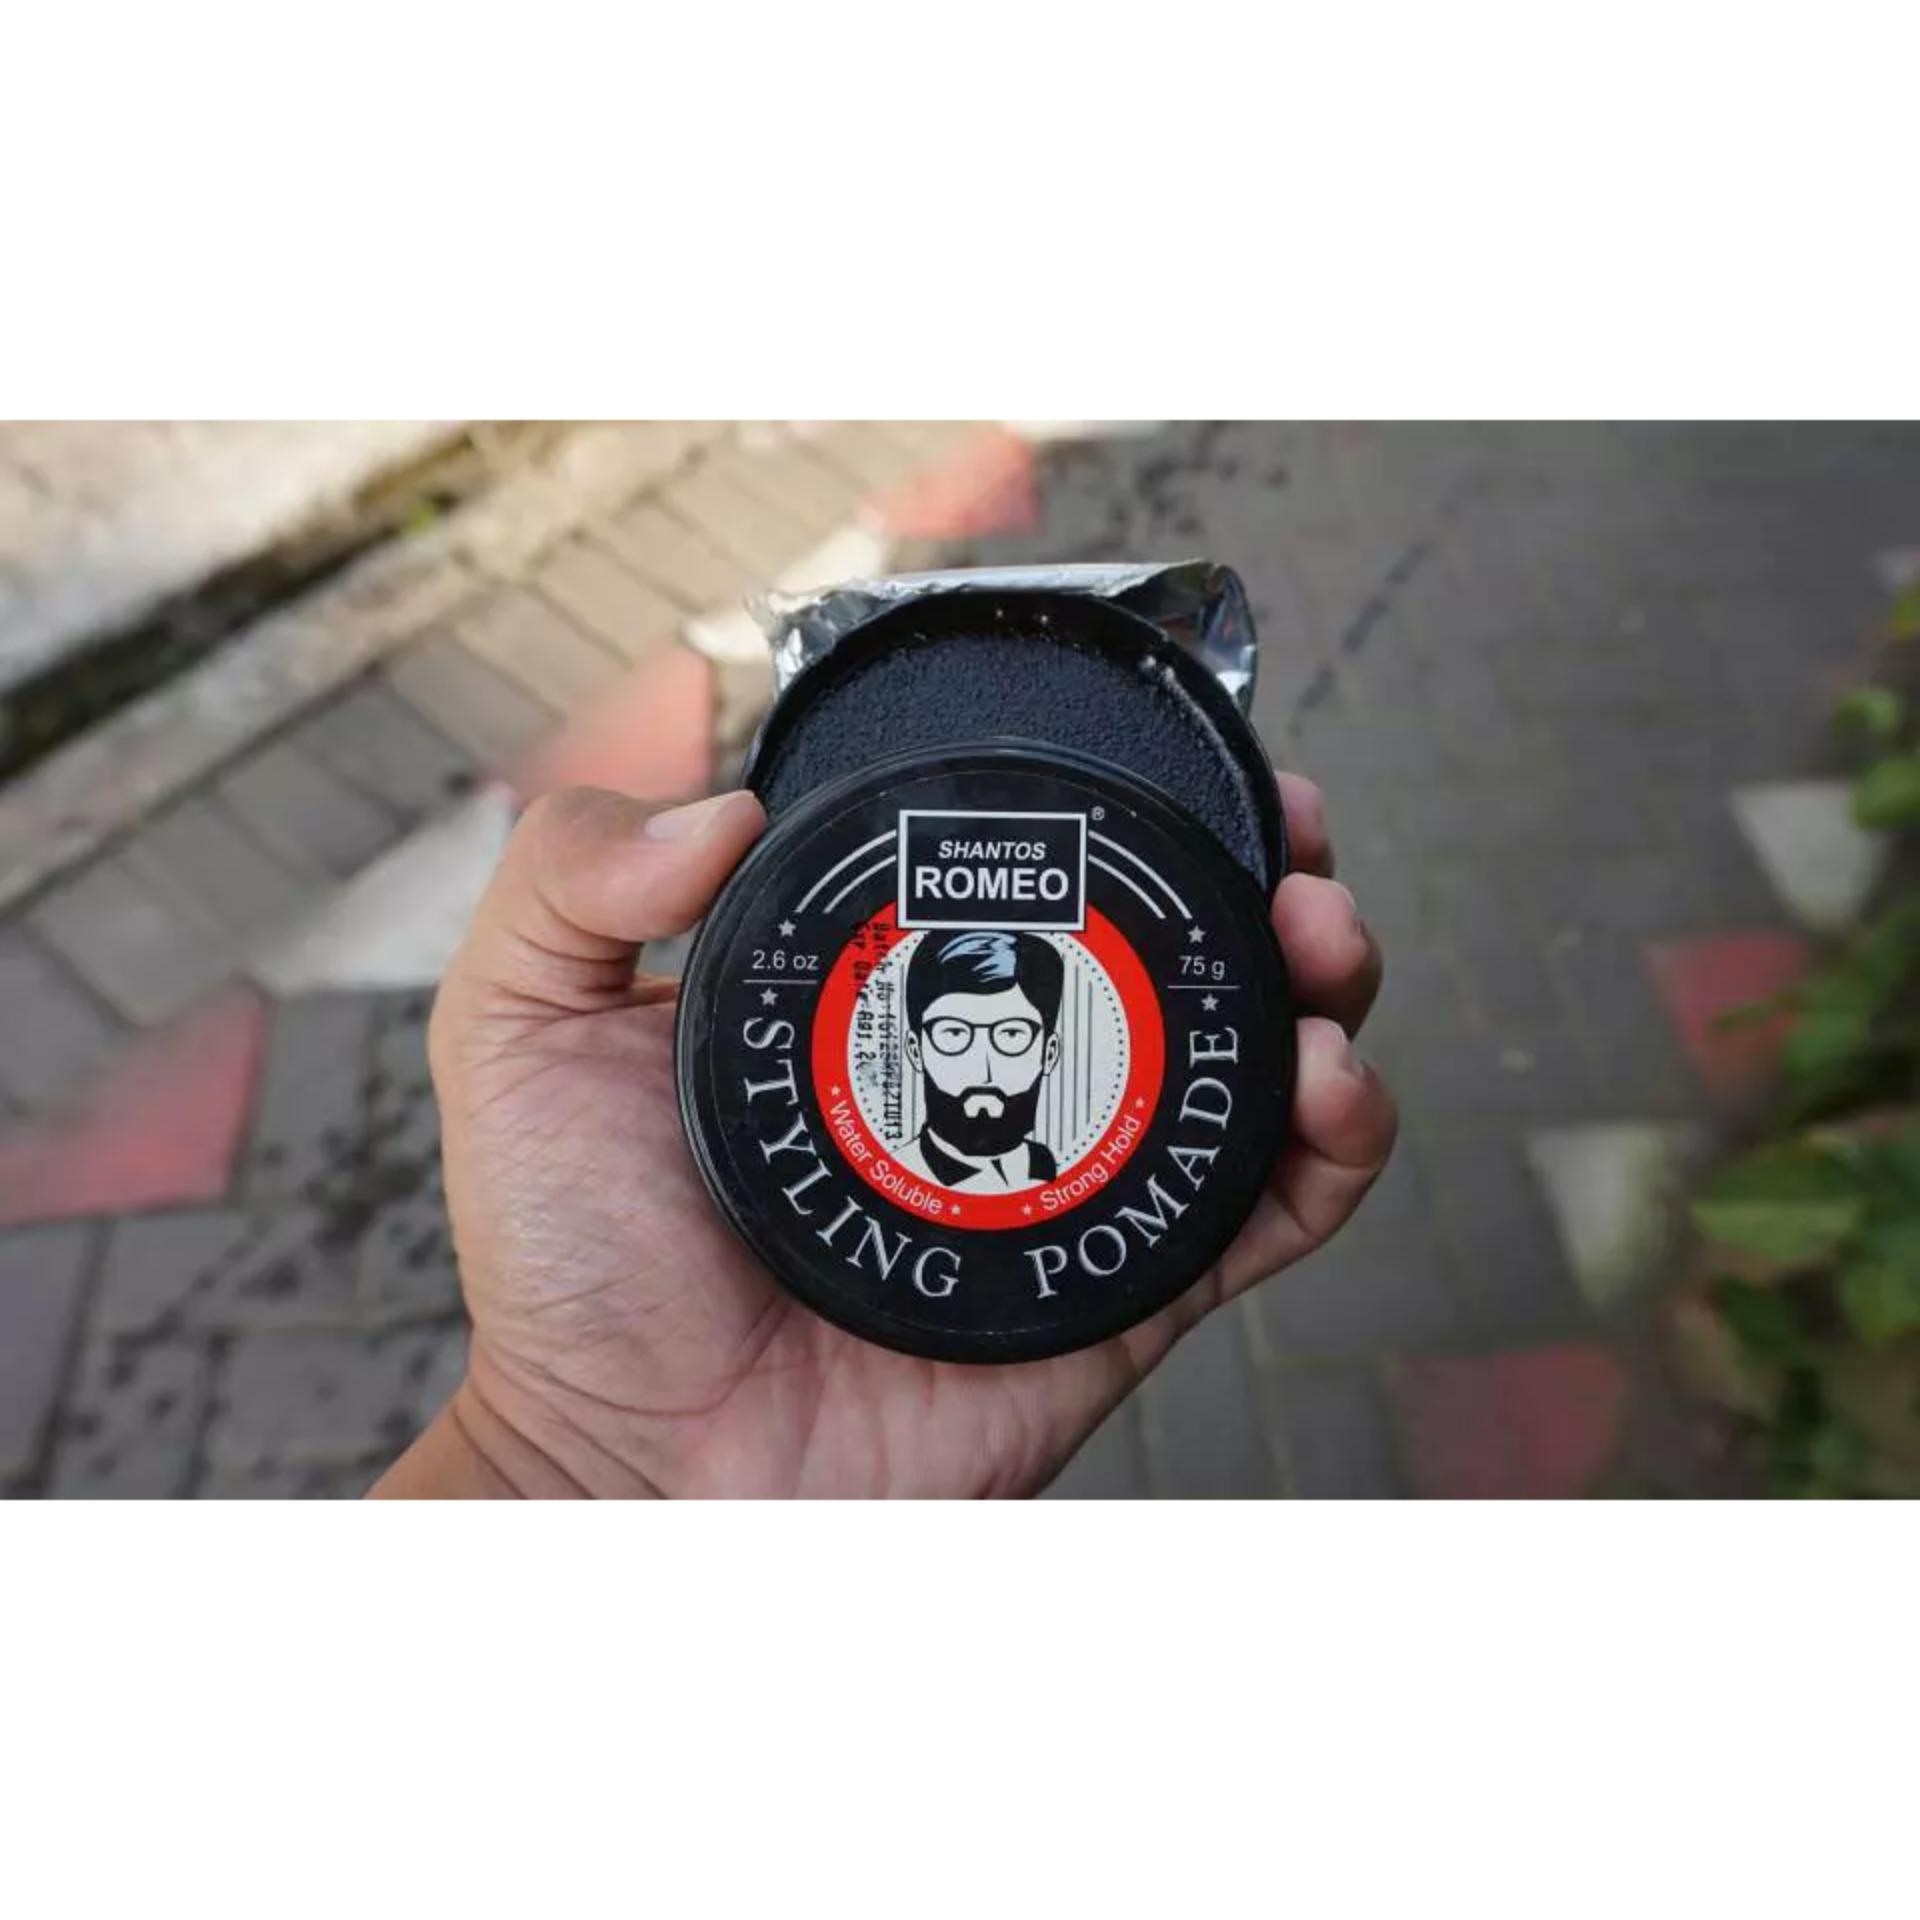 SHANTOS ROMEO STYLING POMADE WATERBASED (WATER BASED) STRONG HOLD 2.6 OZ SUDAH BPOM